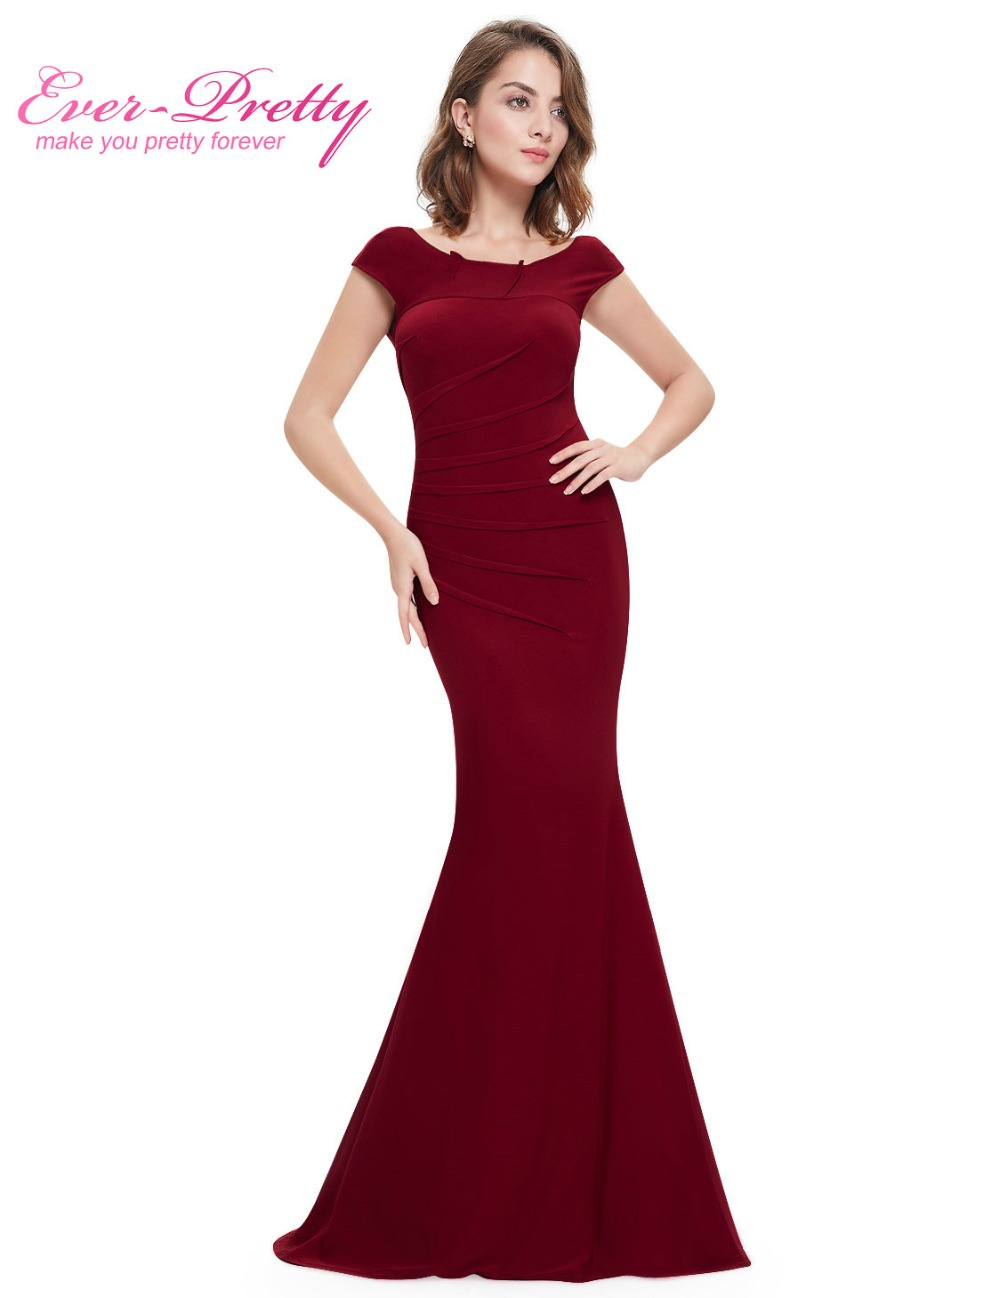 Evening Gown Events